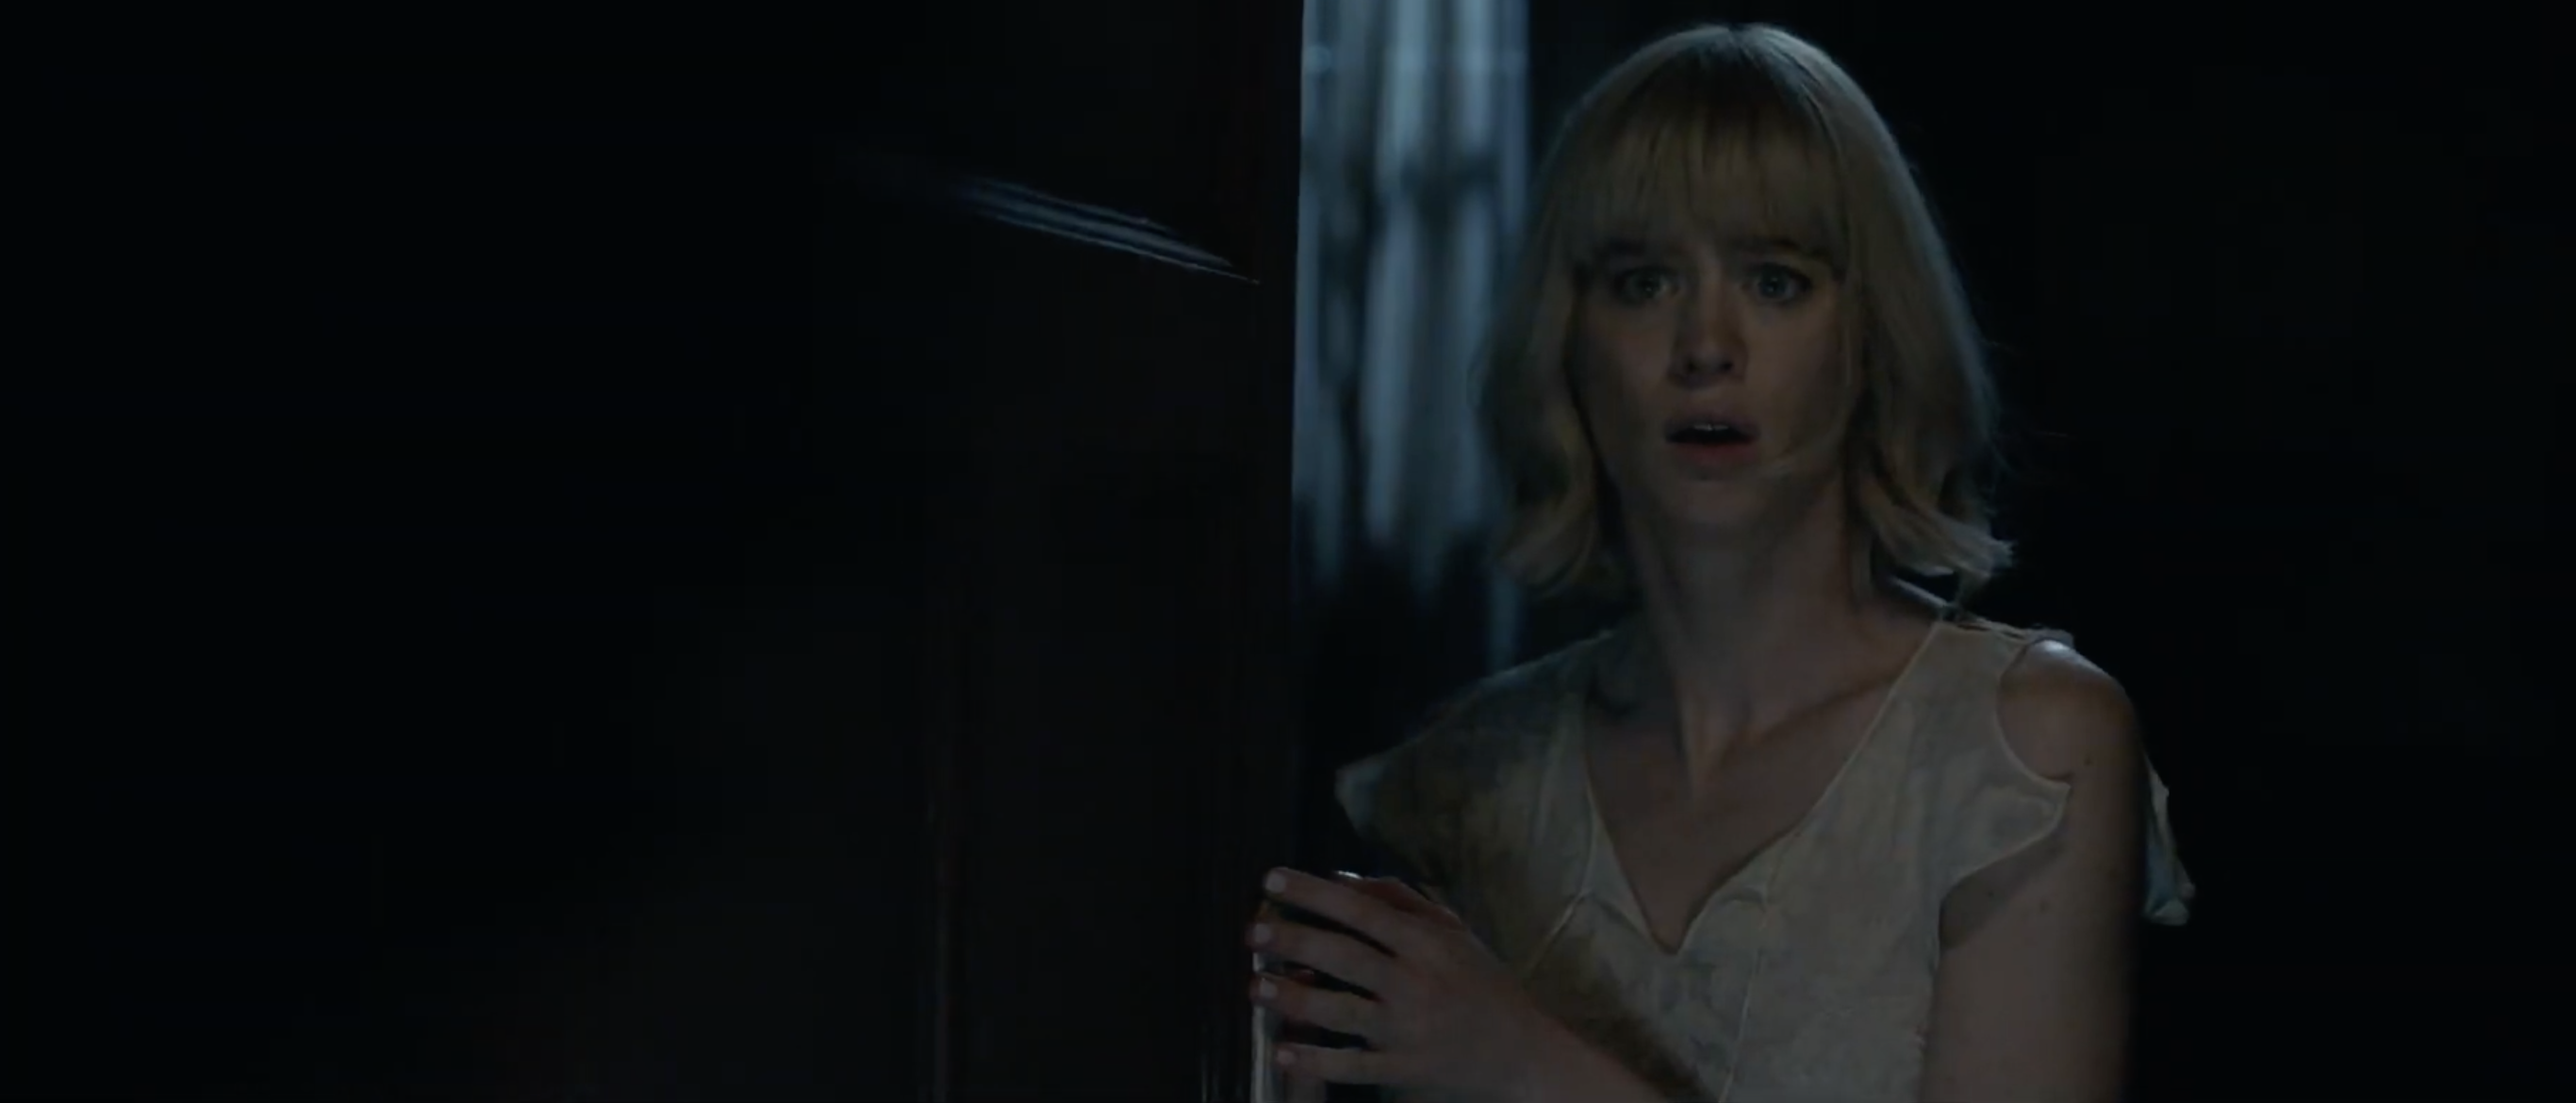 mackenzie davis in a nightgown, looking absolutely shocked, opening a door